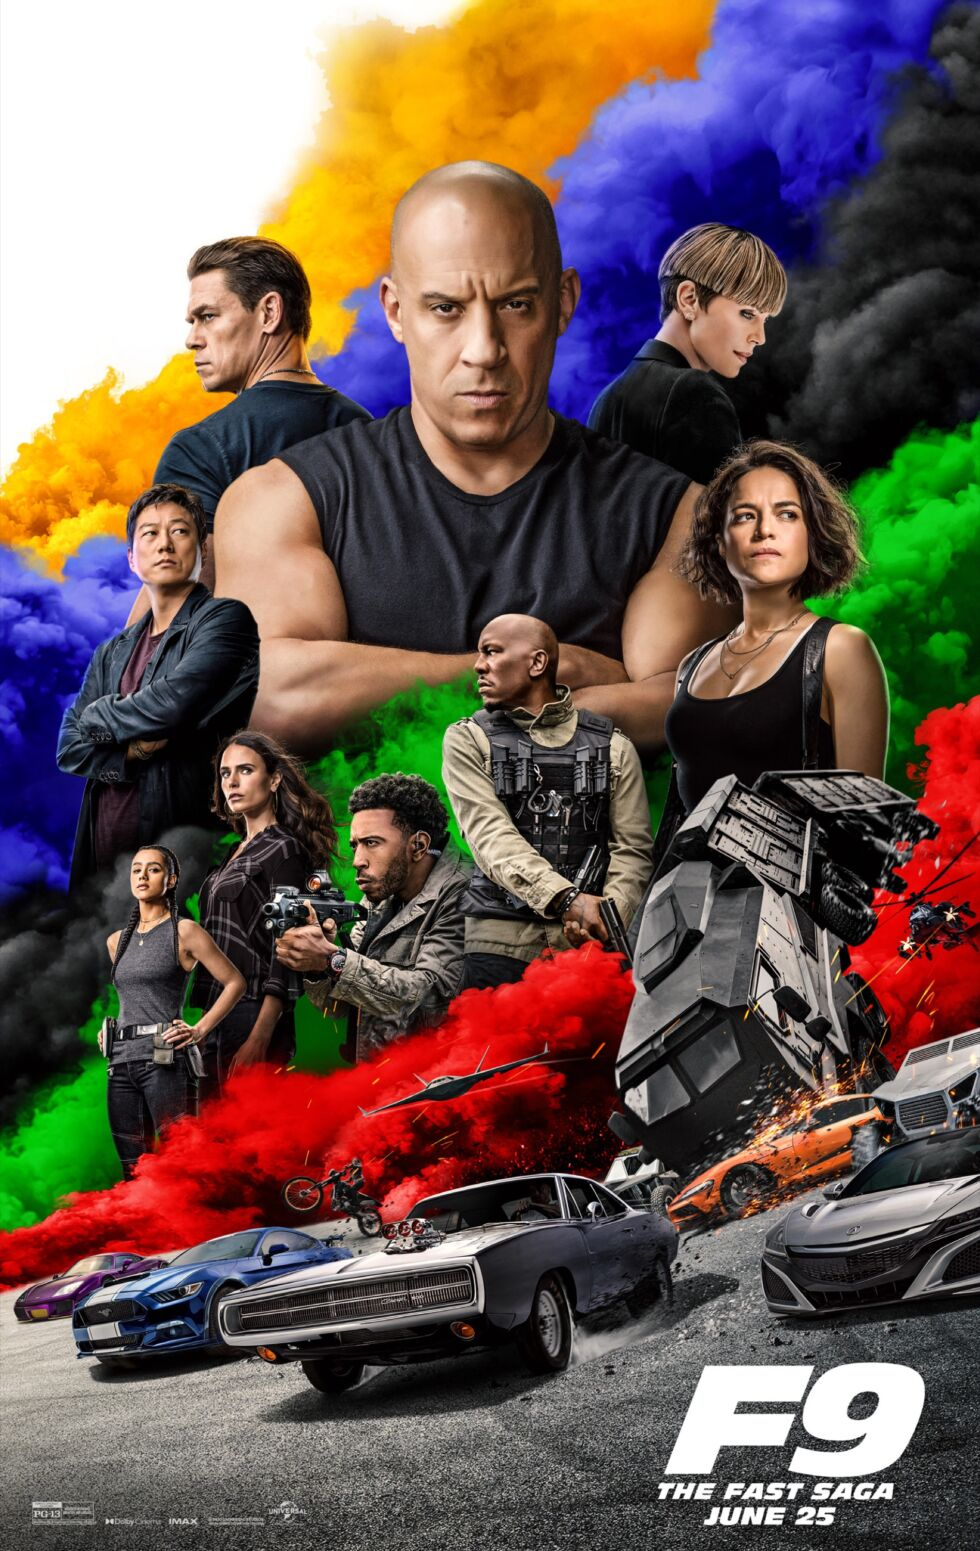 Fast and Furious 9 drops a new trailer ahead of June 25 release